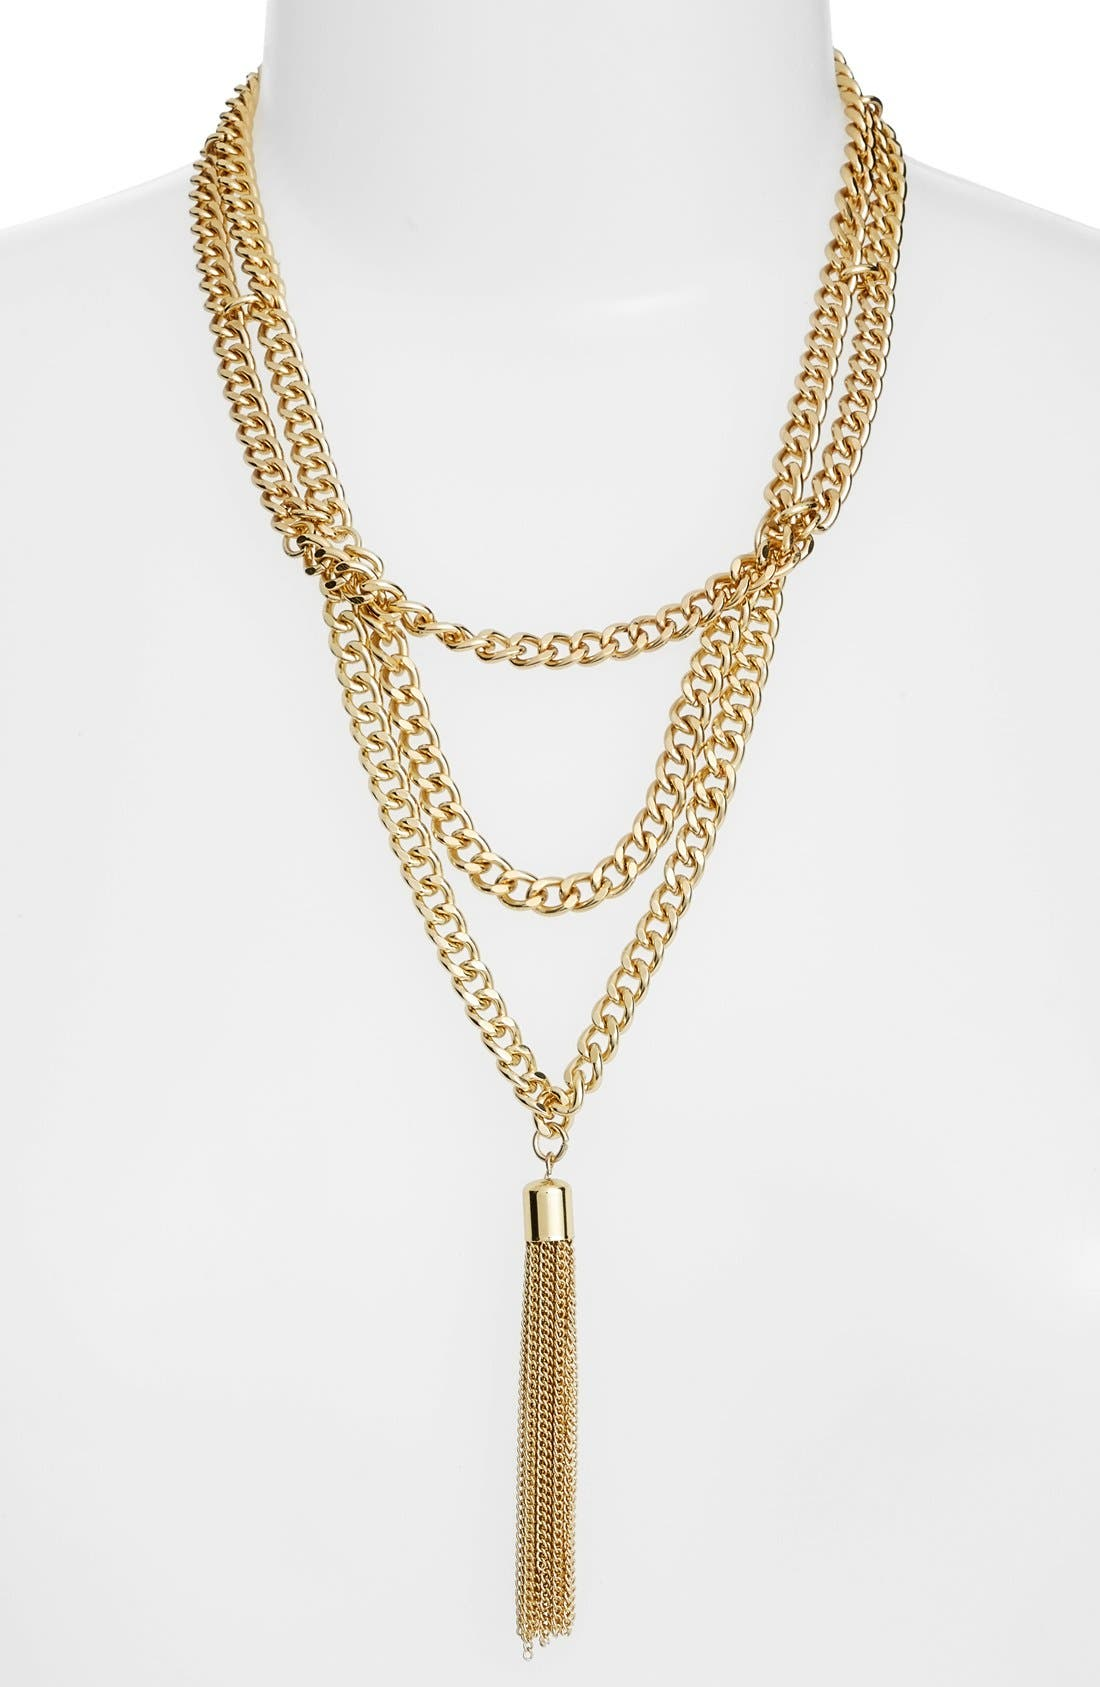 Statement Necklaces For Women Nordstrom Korean Style Blus With Necklace Short Sleeve